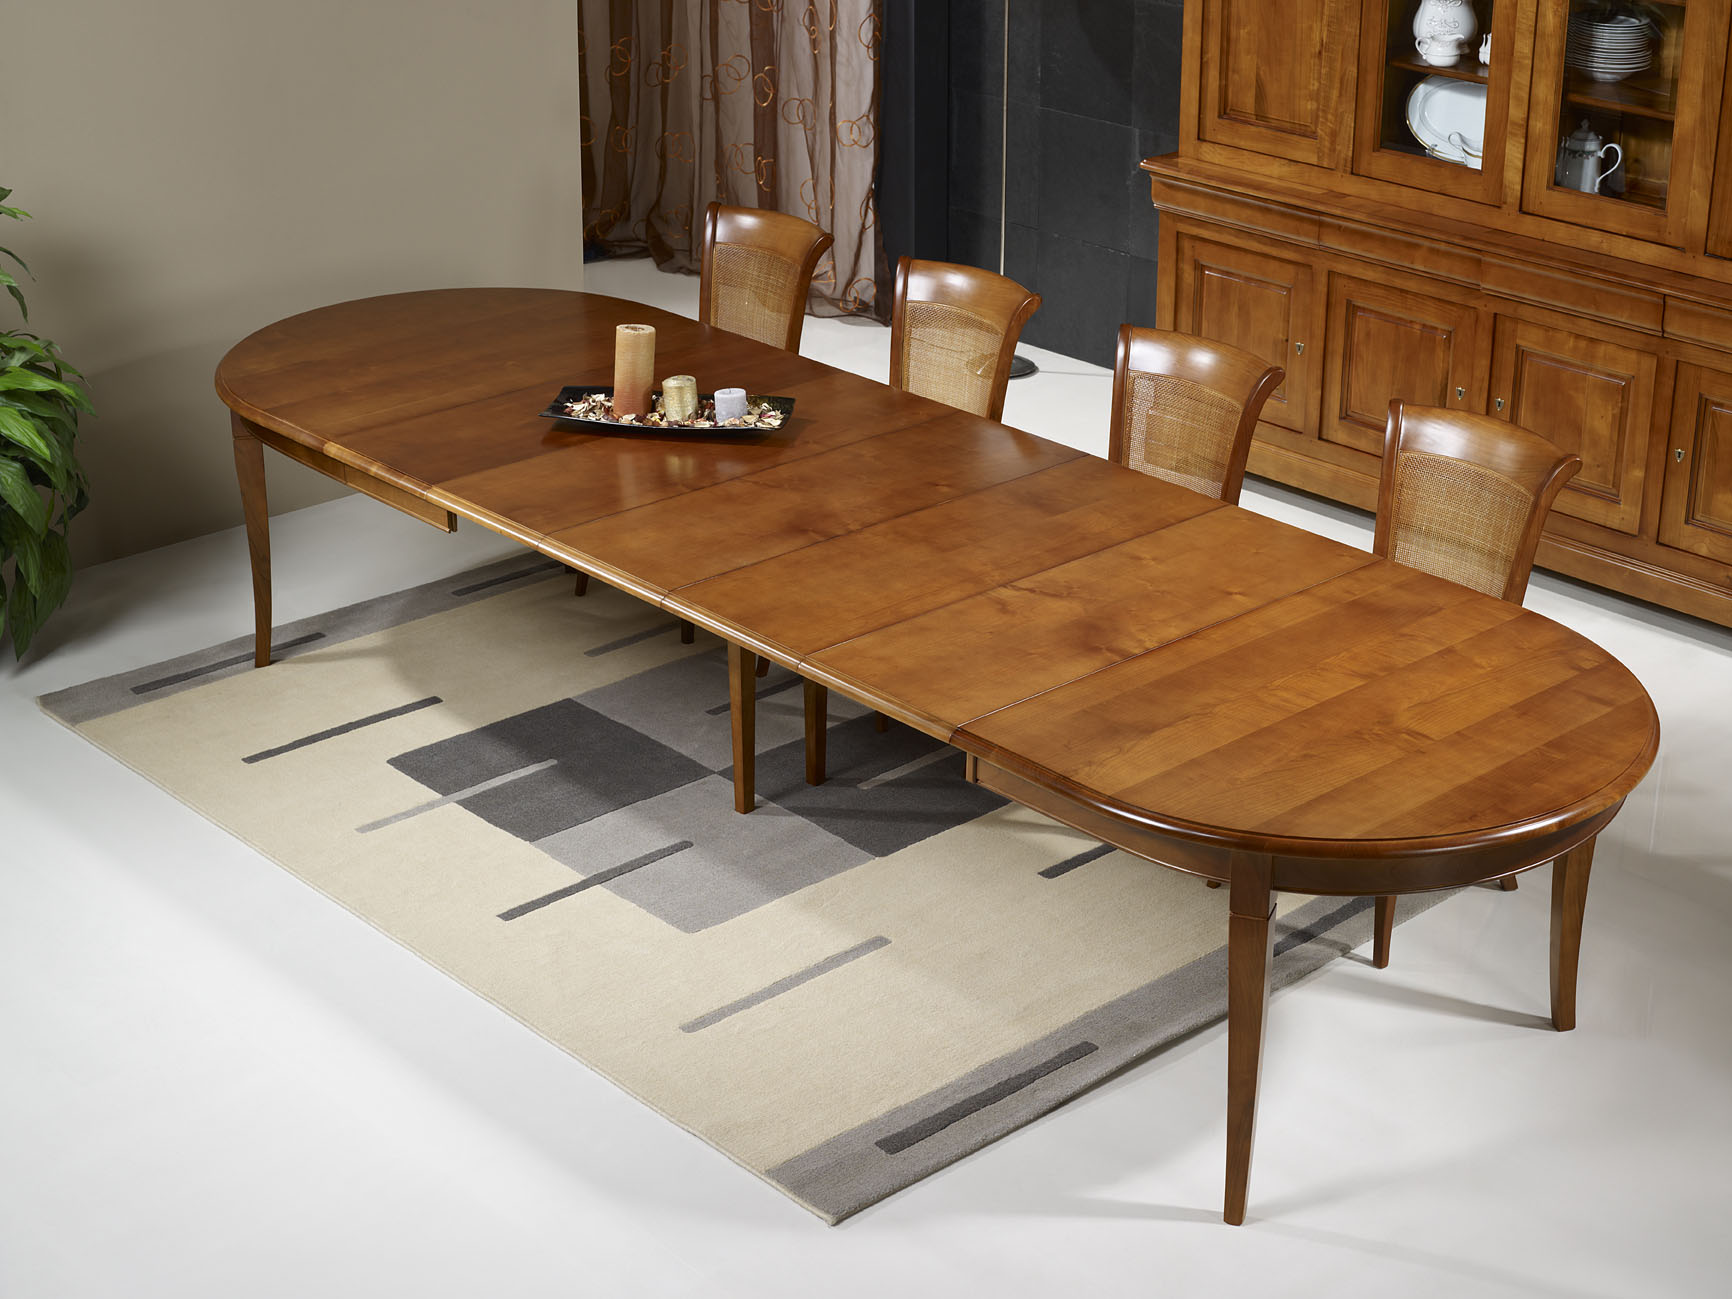 Table ovale 180x120 en merisier massif de style louis philippe avec 5 allonges de 40 cm meuble - Set de table ovale ...